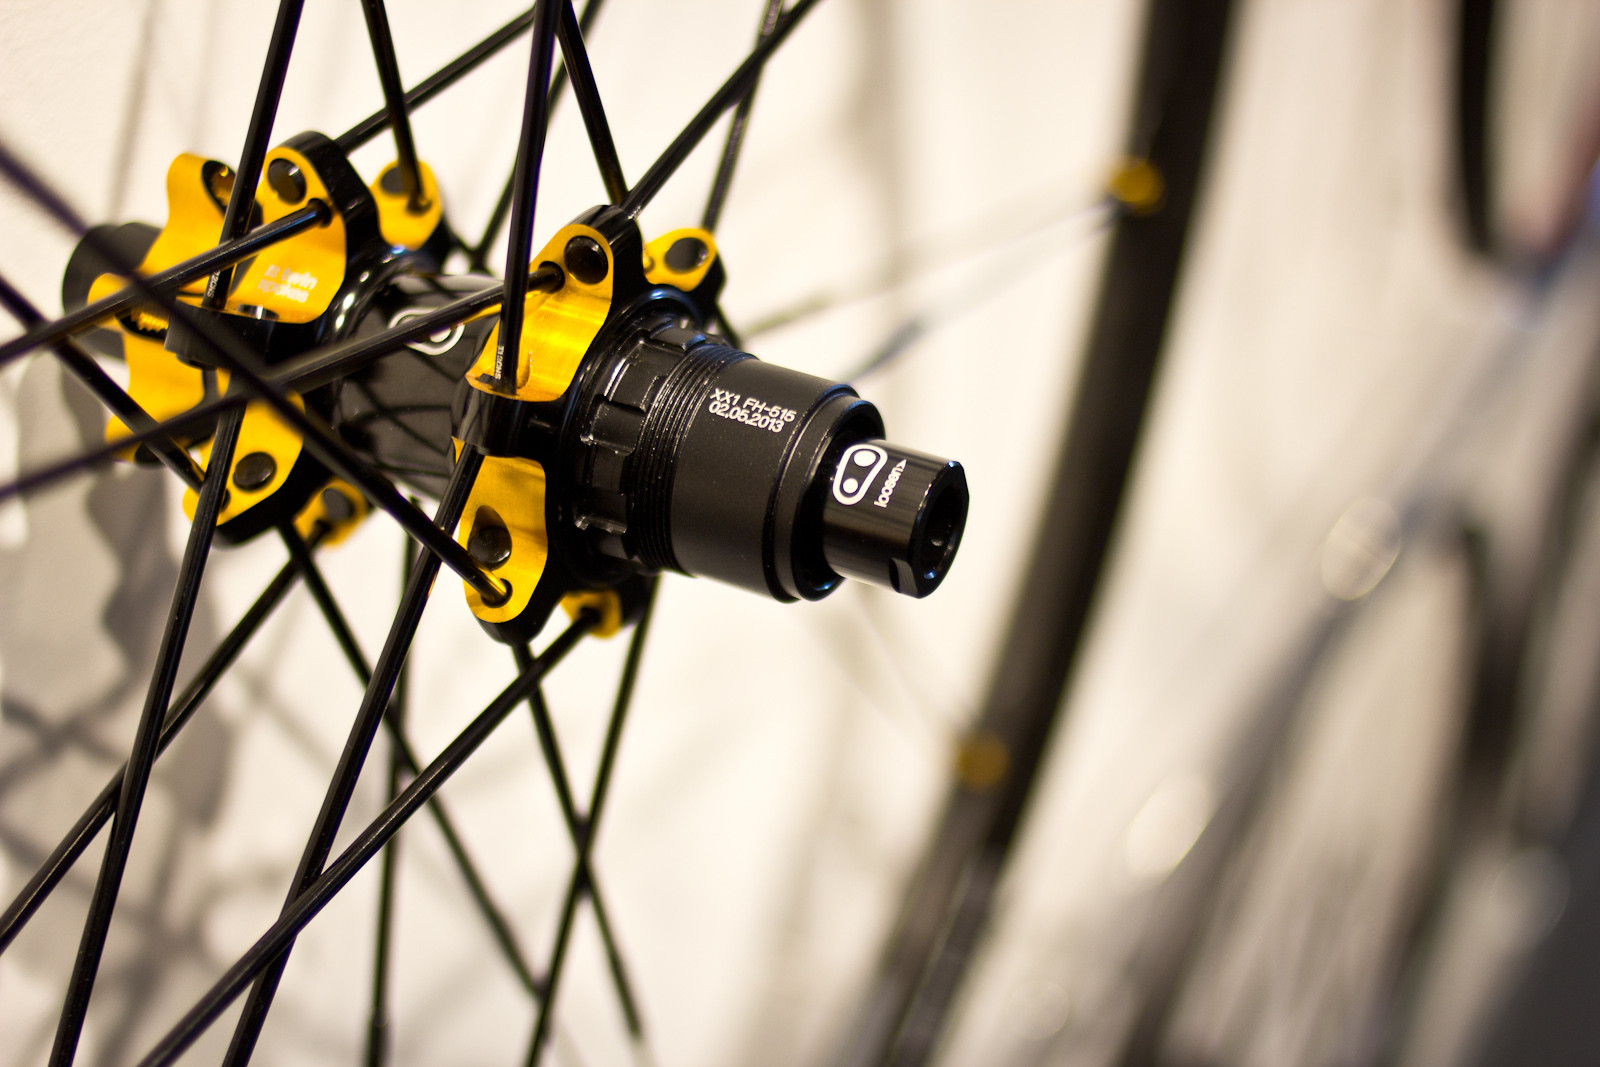 Crankbrothers Hub With XD Driver Body - 2014 Mountain Bike Components at Eurobike 2013 - Mountain Biking Pictures - Vital MTB